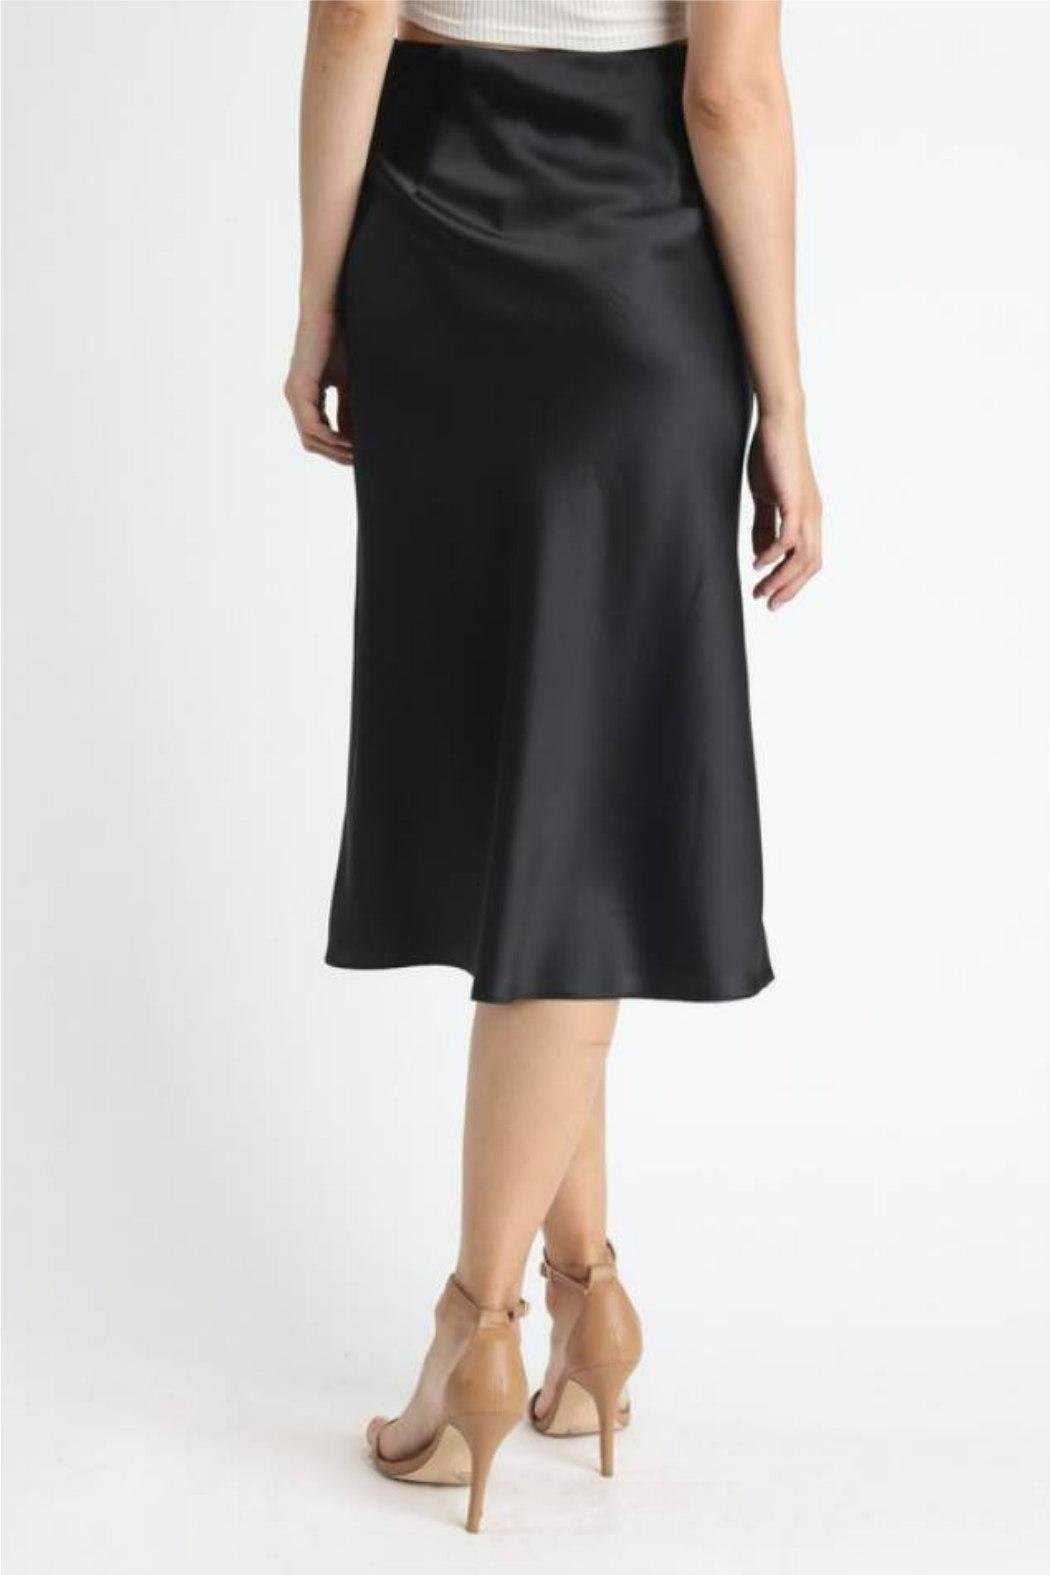 essue Satin Midi Skirt - Side Cropped Image